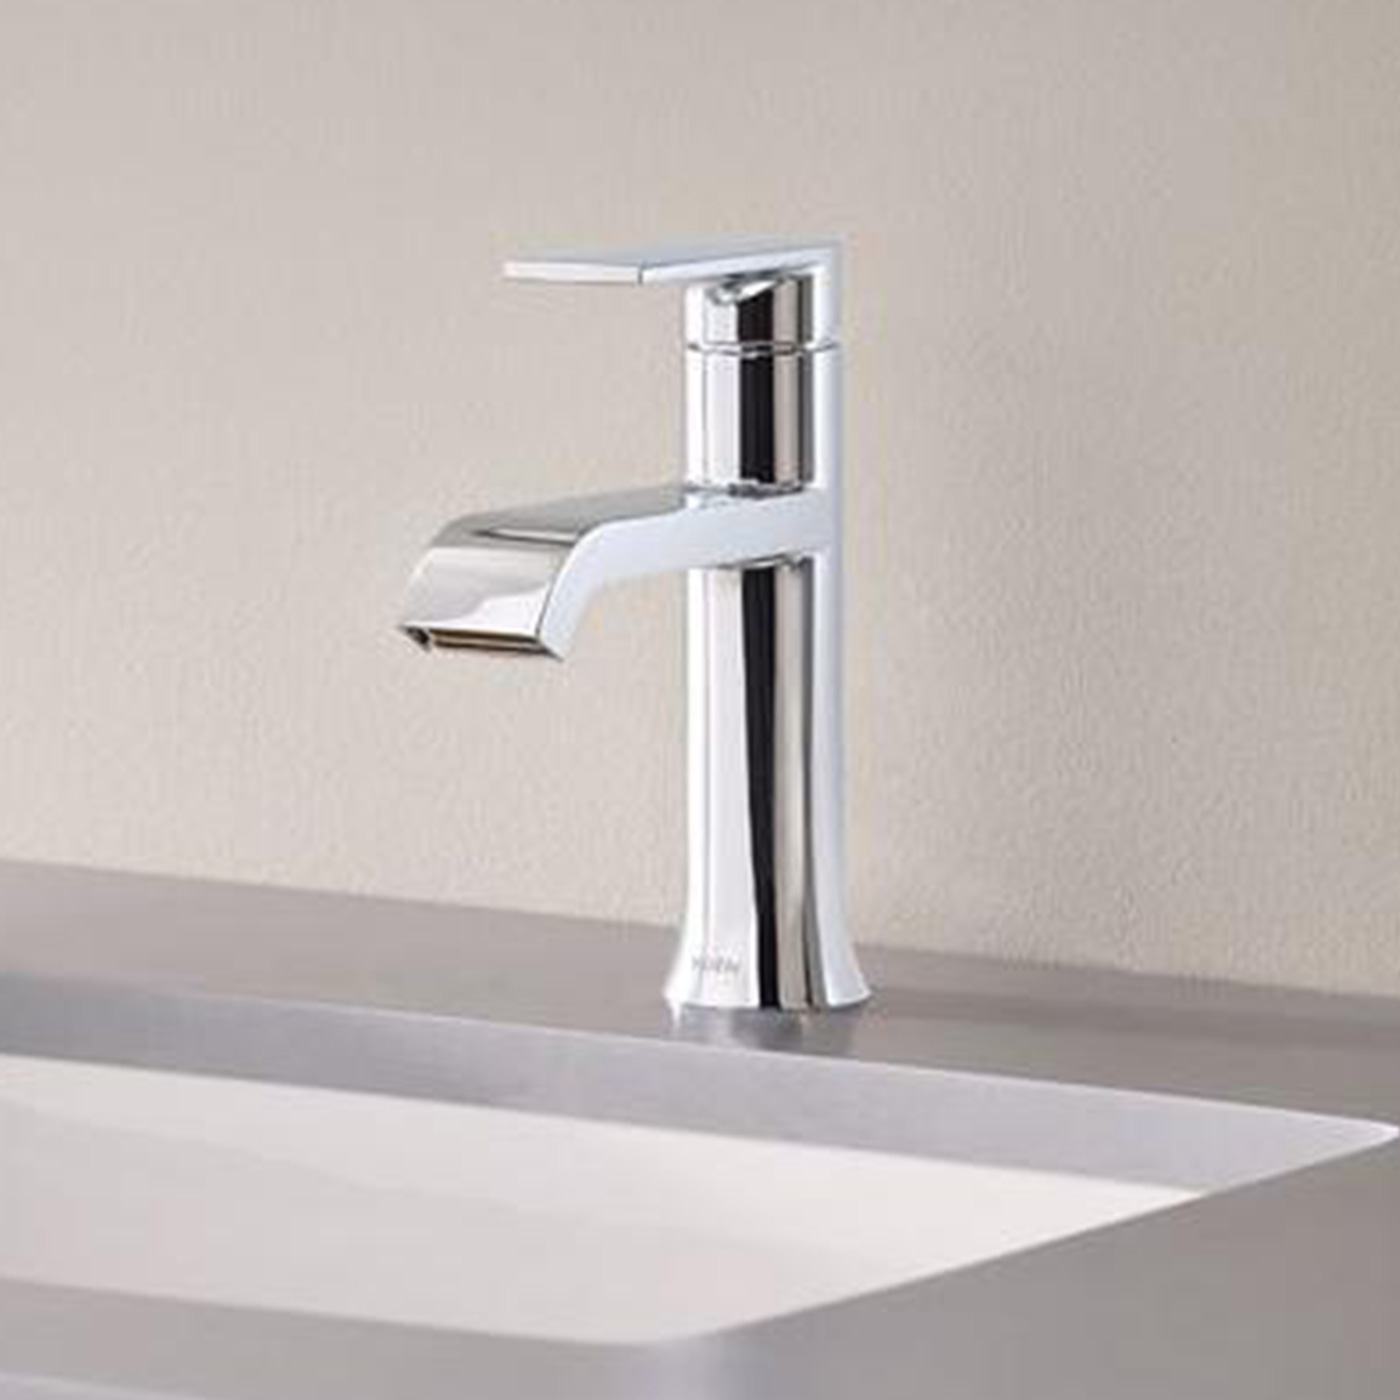 sink sets elegant best design fixtures new faucet faucets copper contemporary furniture brands the of bathroom amazing ideas